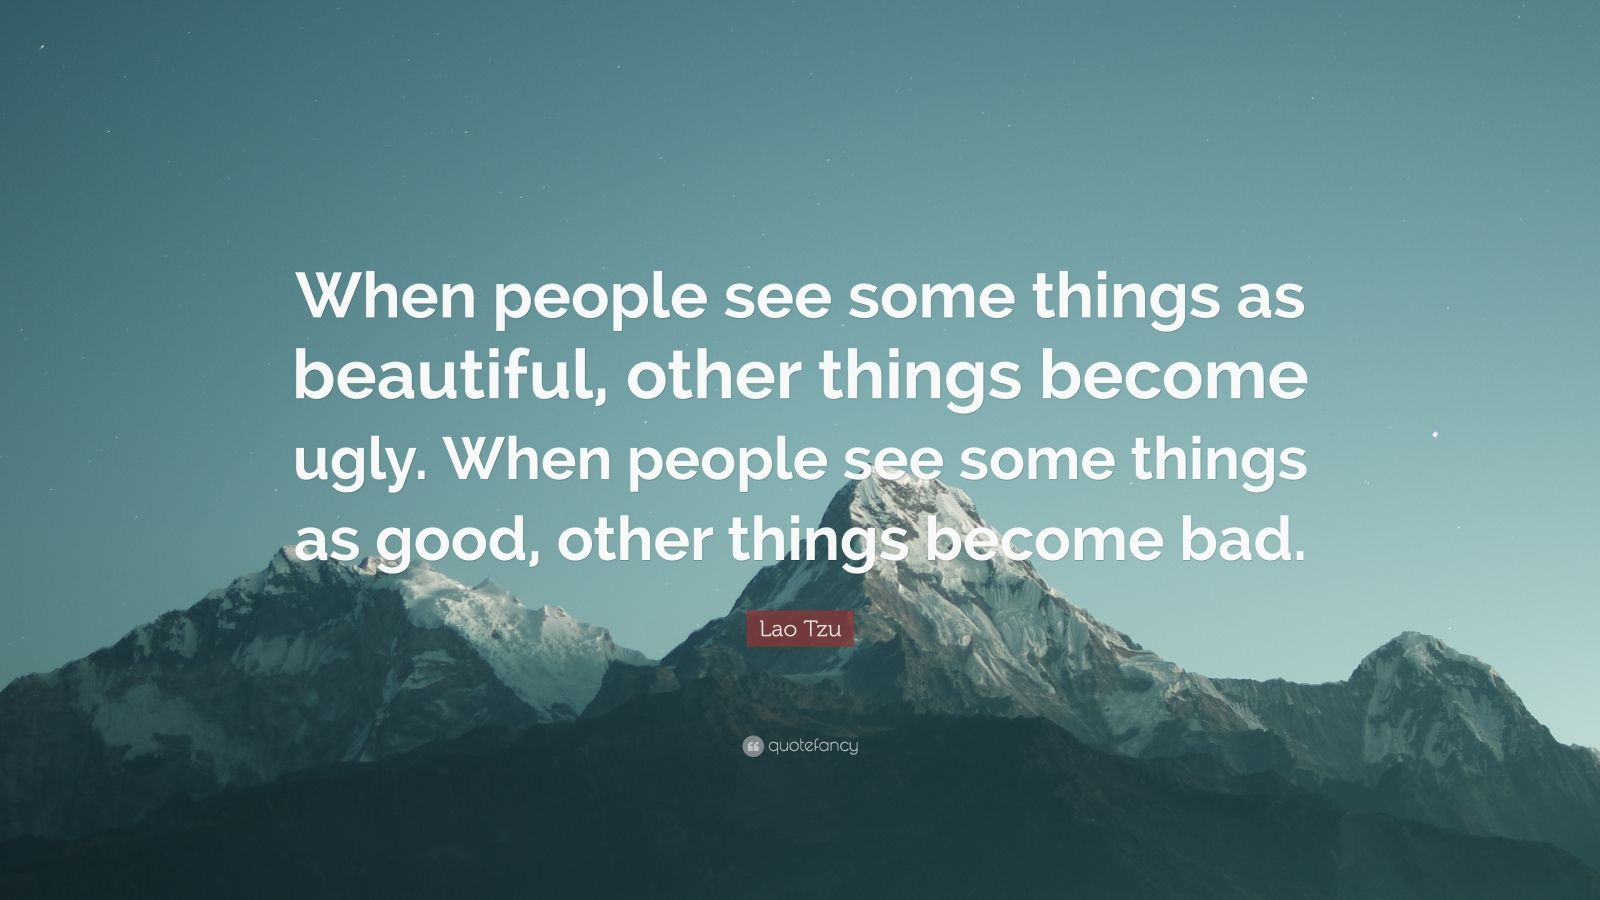 """Lao Tzu Quote: """"When people see some things as beautiful, other things become ugly. When people see some things as good, other things become bad."""""""